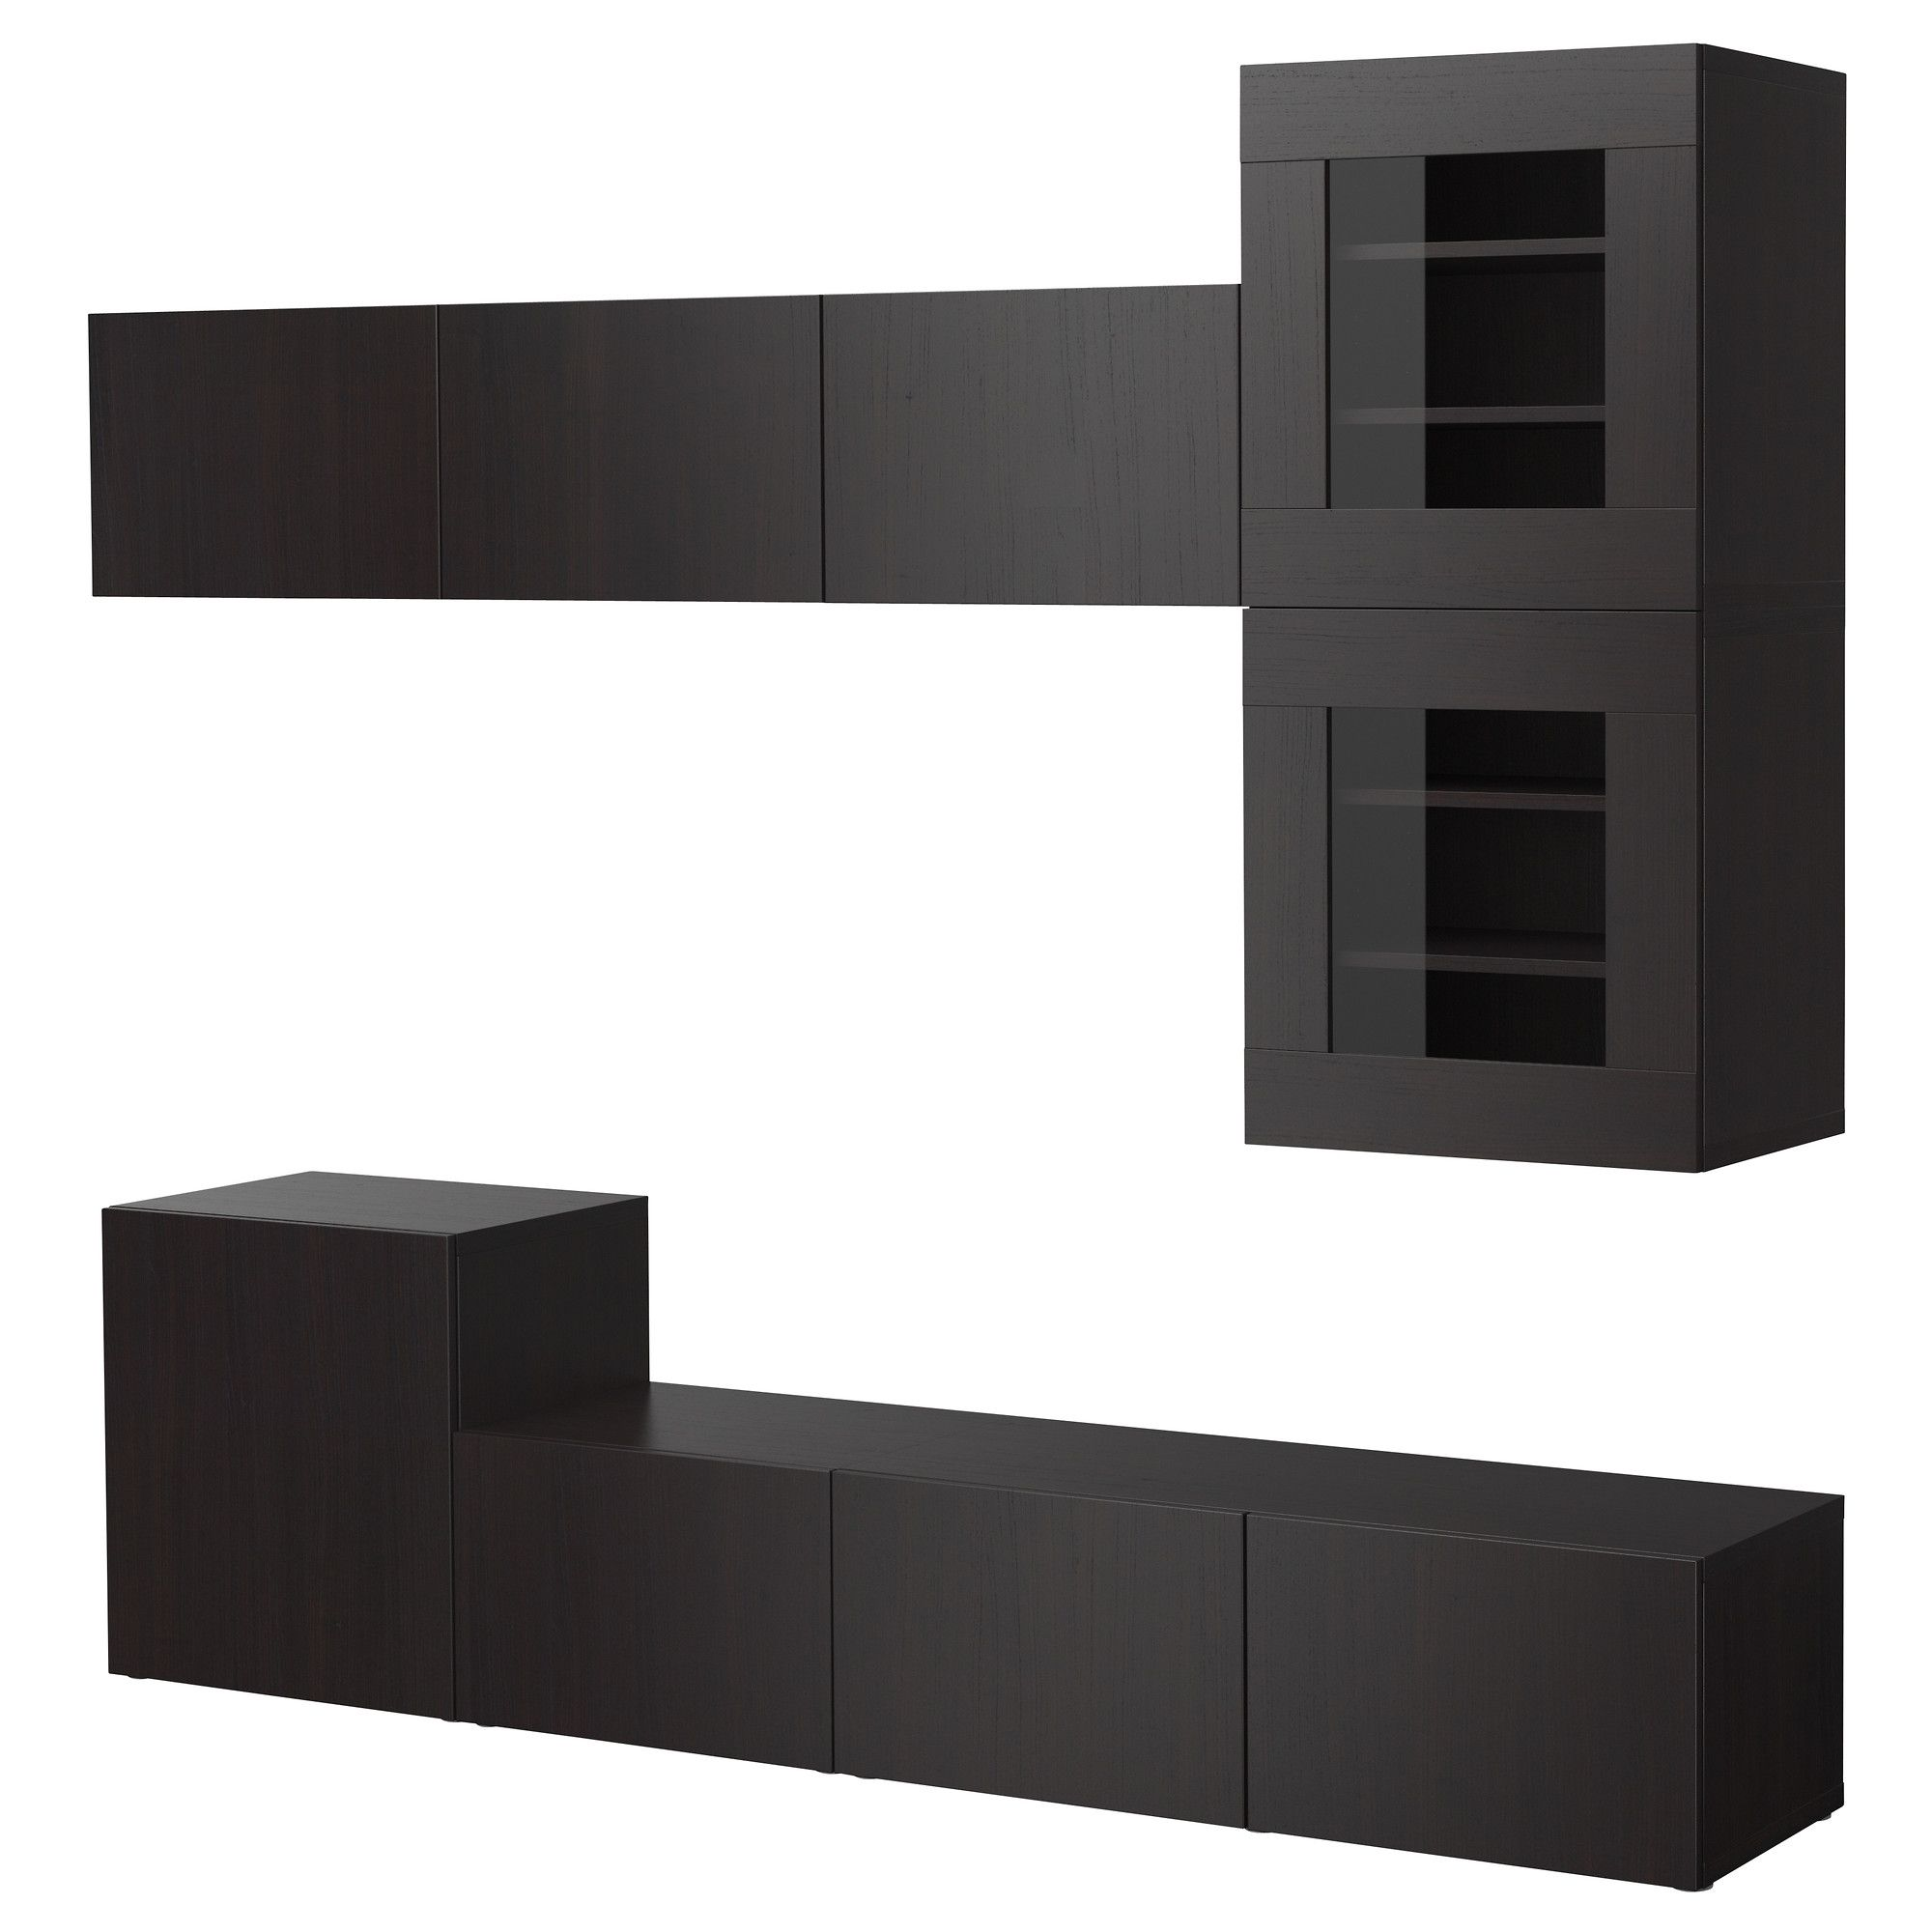 best combinaison de rangement ikea meuble tv hifi pinterest ikea meuble de rangement. Black Bedroom Furniture Sets. Home Design Ideas